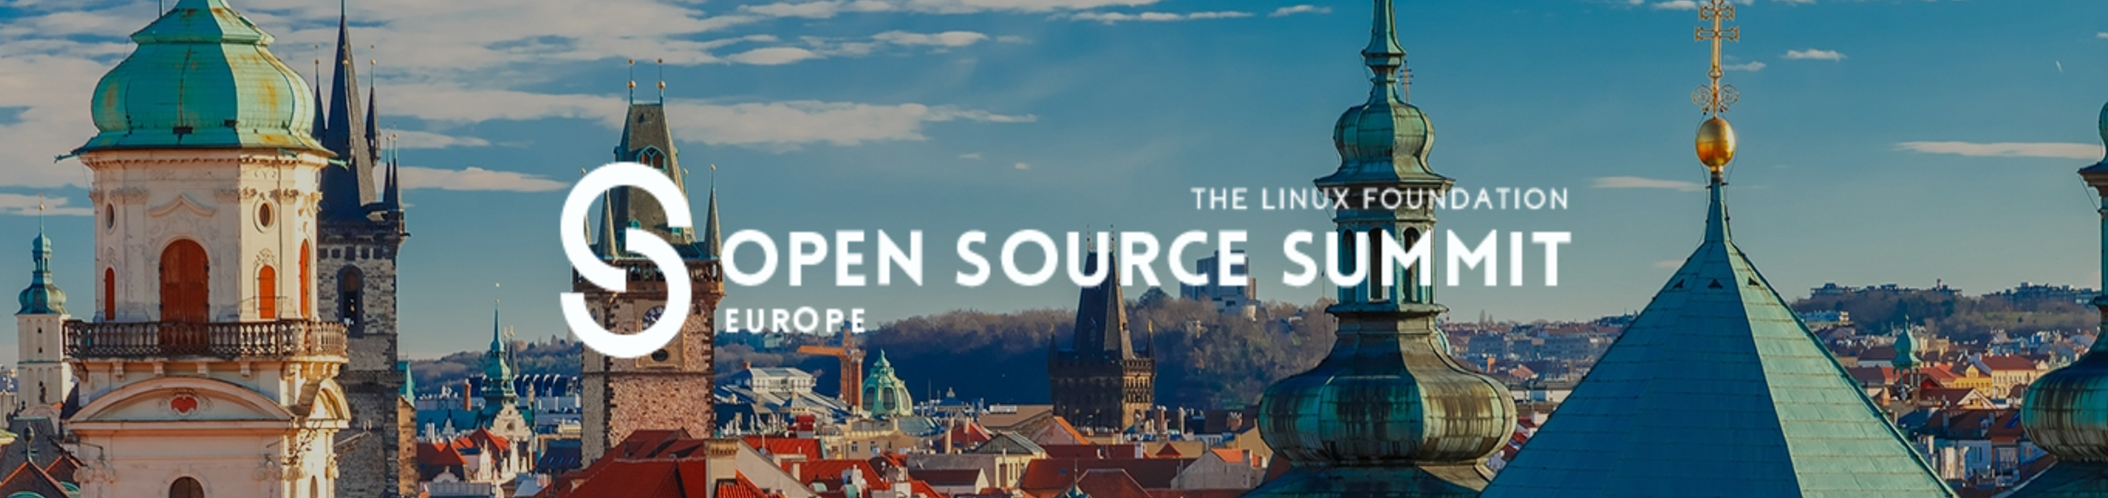 open-source-summit-europe-2017.png